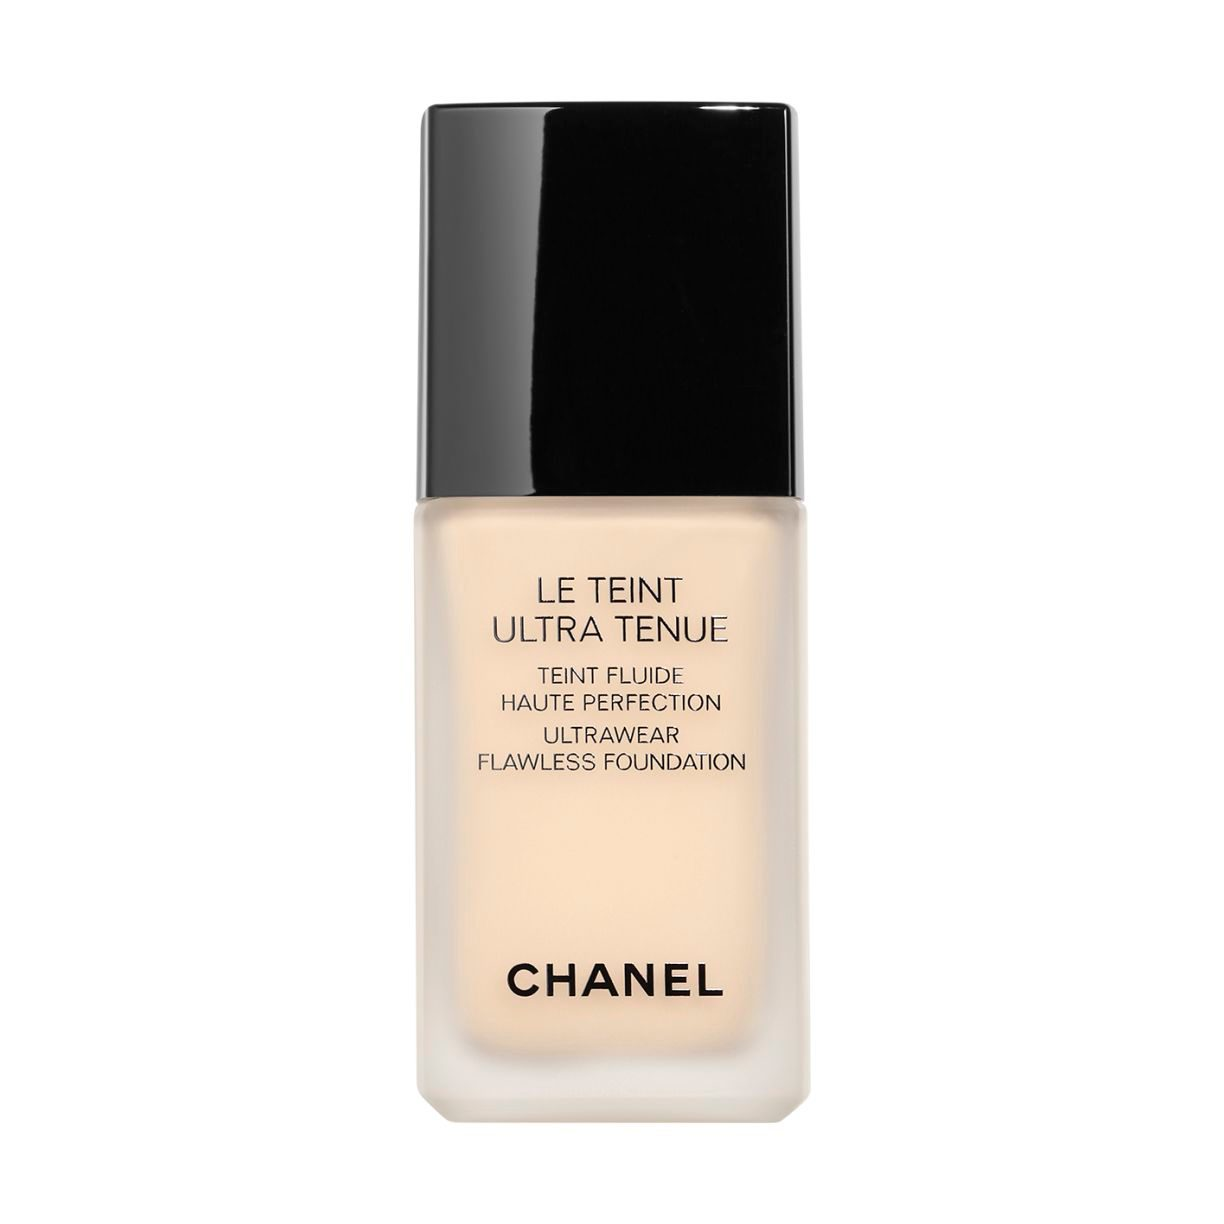 LE TEINT ULTRA TENUE BASE DE MAQUILLAJE PERFECTA